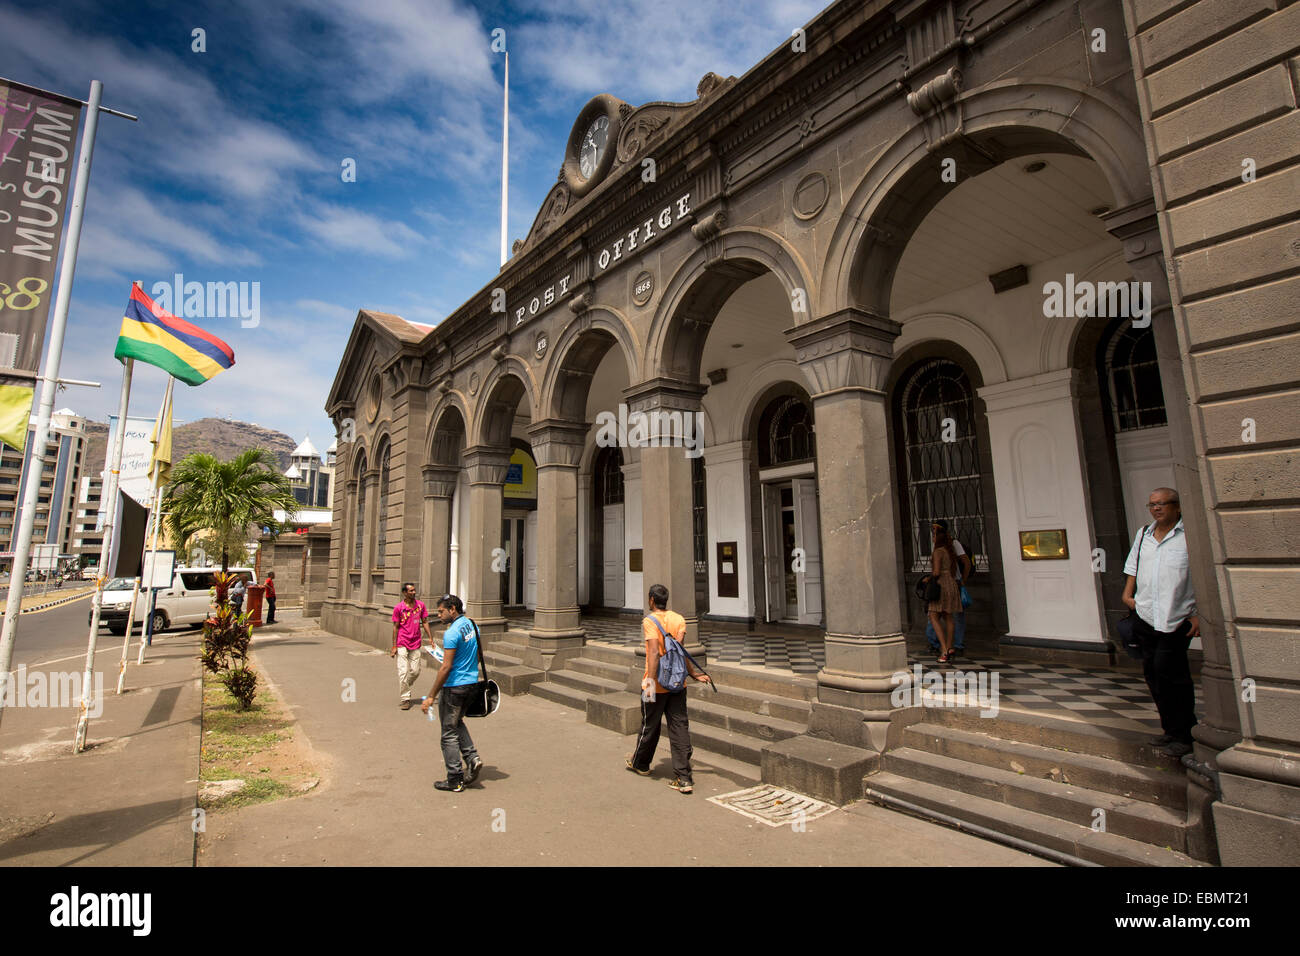 Mauritius, Port Louis, Caudon Waterfront, historic colonial era Head Post Office building and Postal Museum - Stock Image